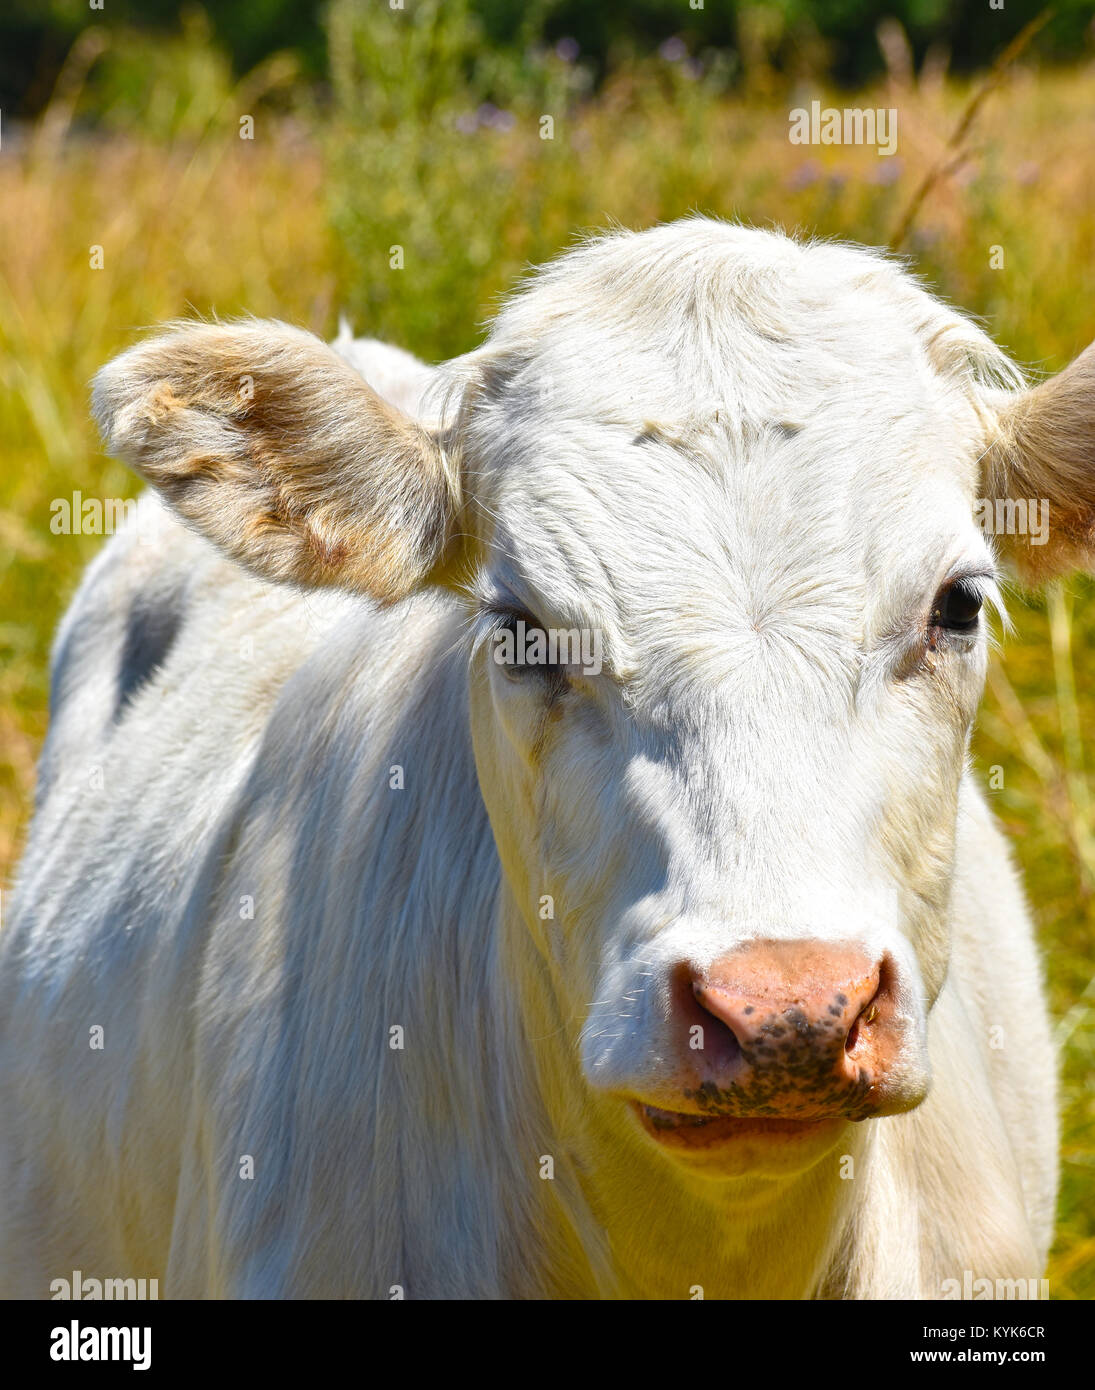 White bull cow close up in a blurred field of tall grasses.  He has a little bit of grass on his forehead and a - Stock Image